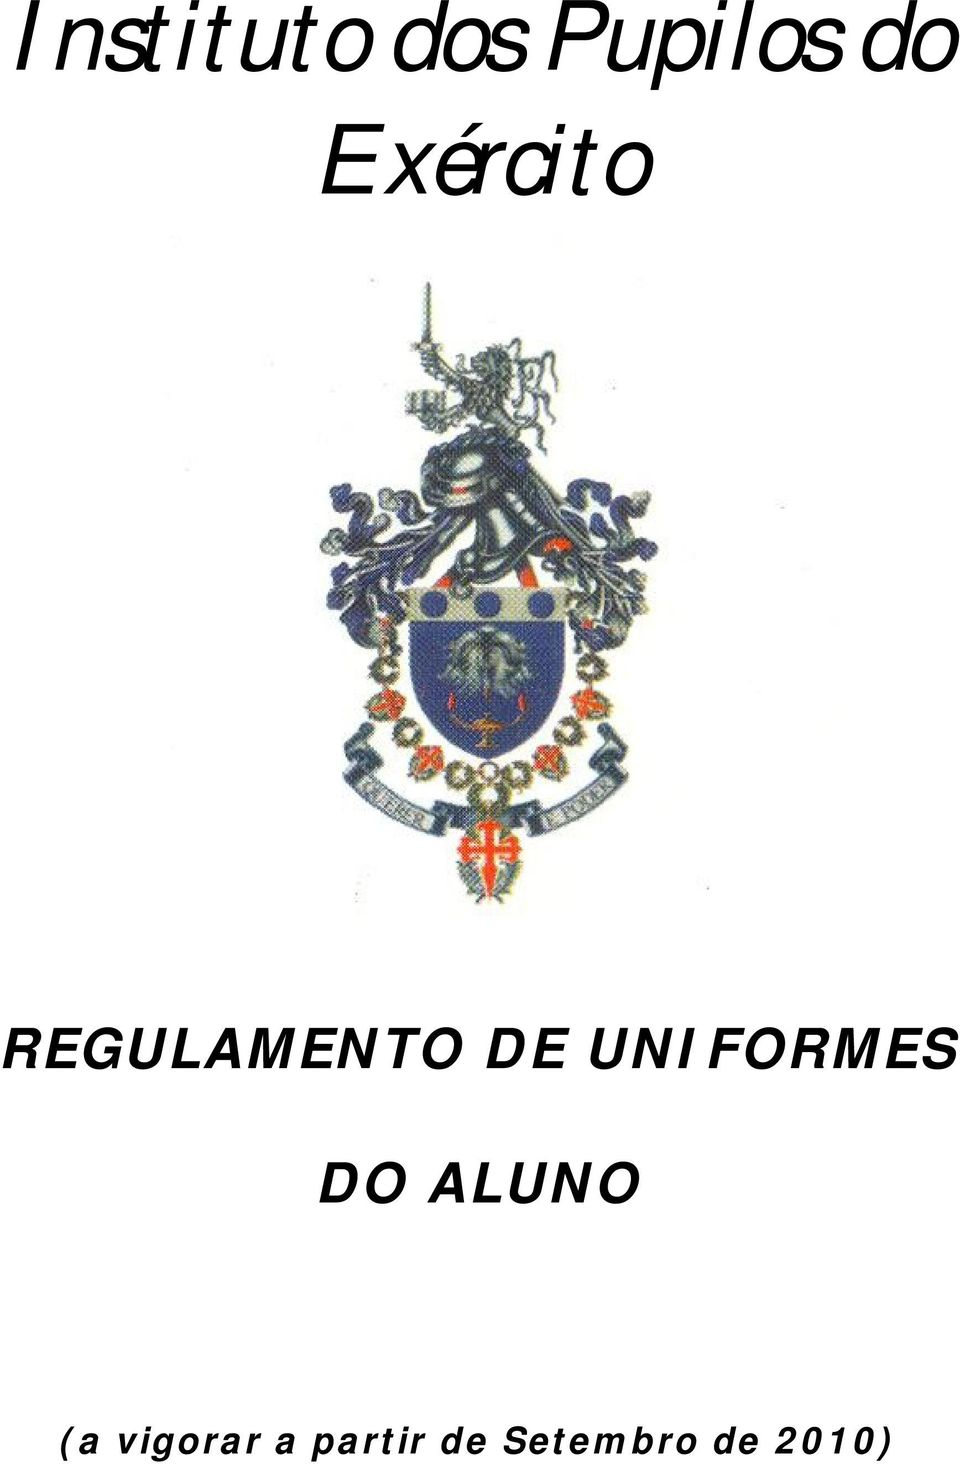 UNIFORMES DO ALUNO (a